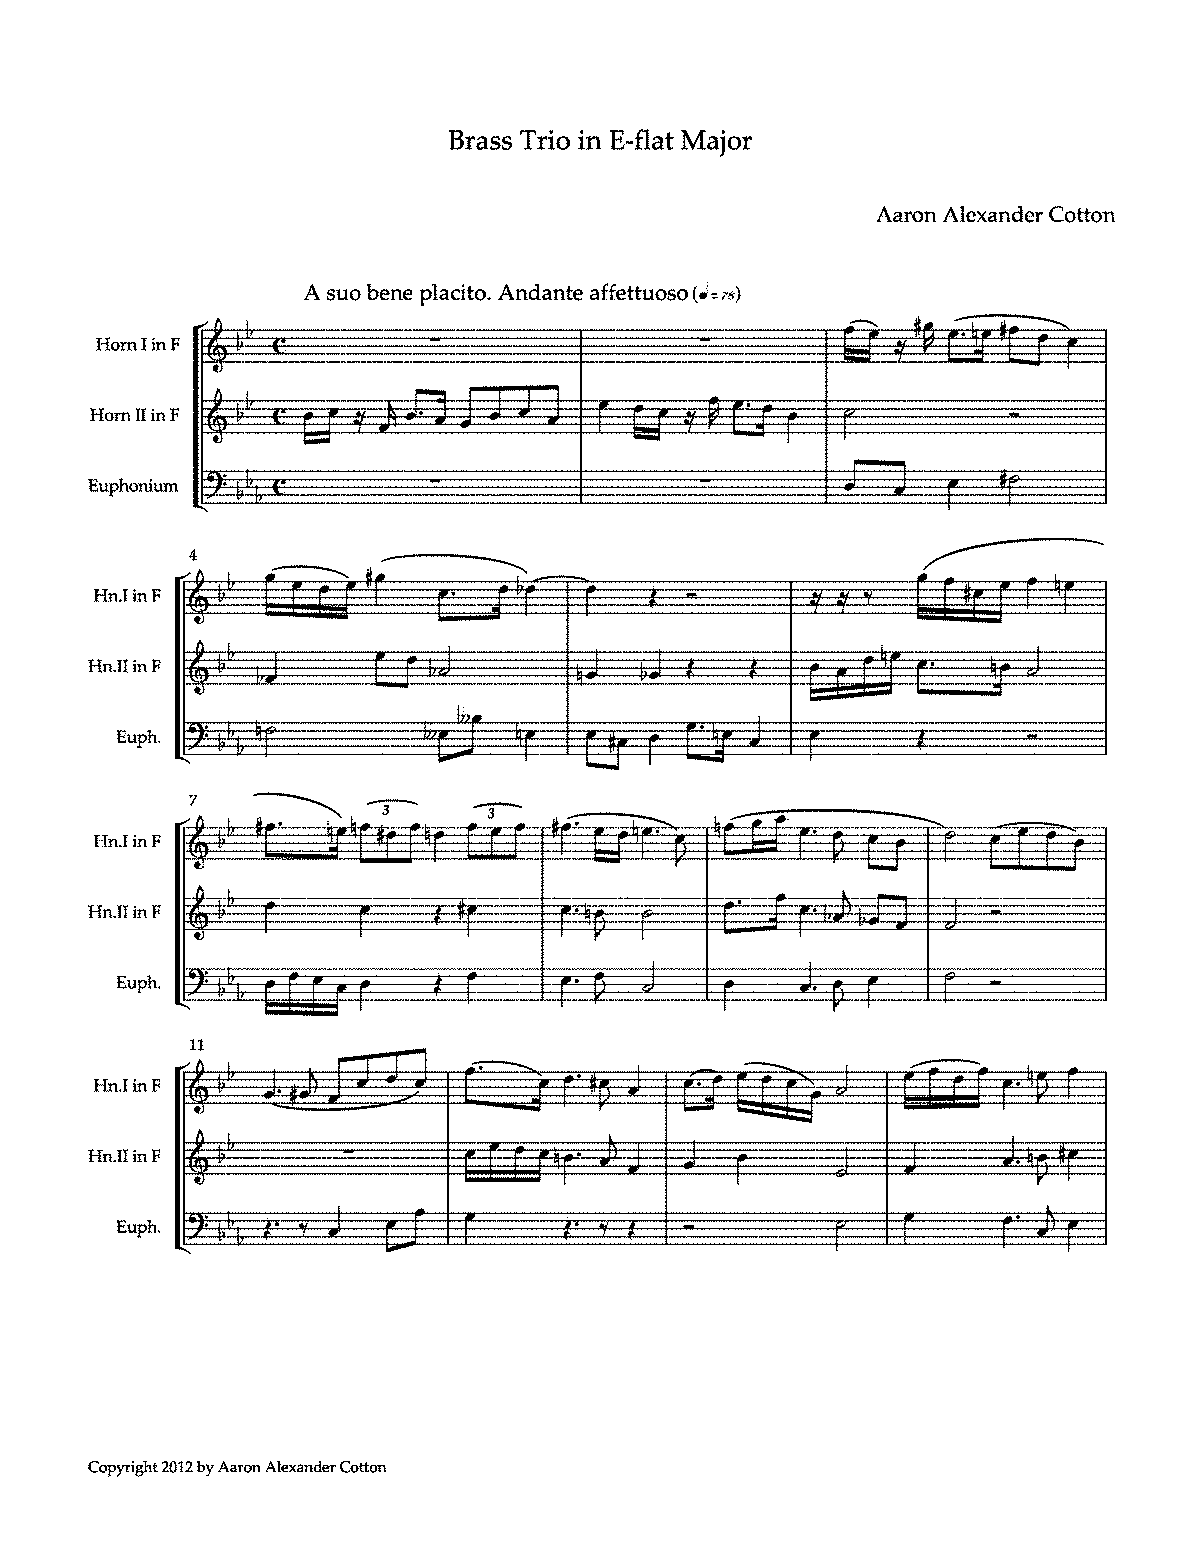 PMLP353756-Brass Trio in E-flat Major by Aaron Alexander Cotton.pdf